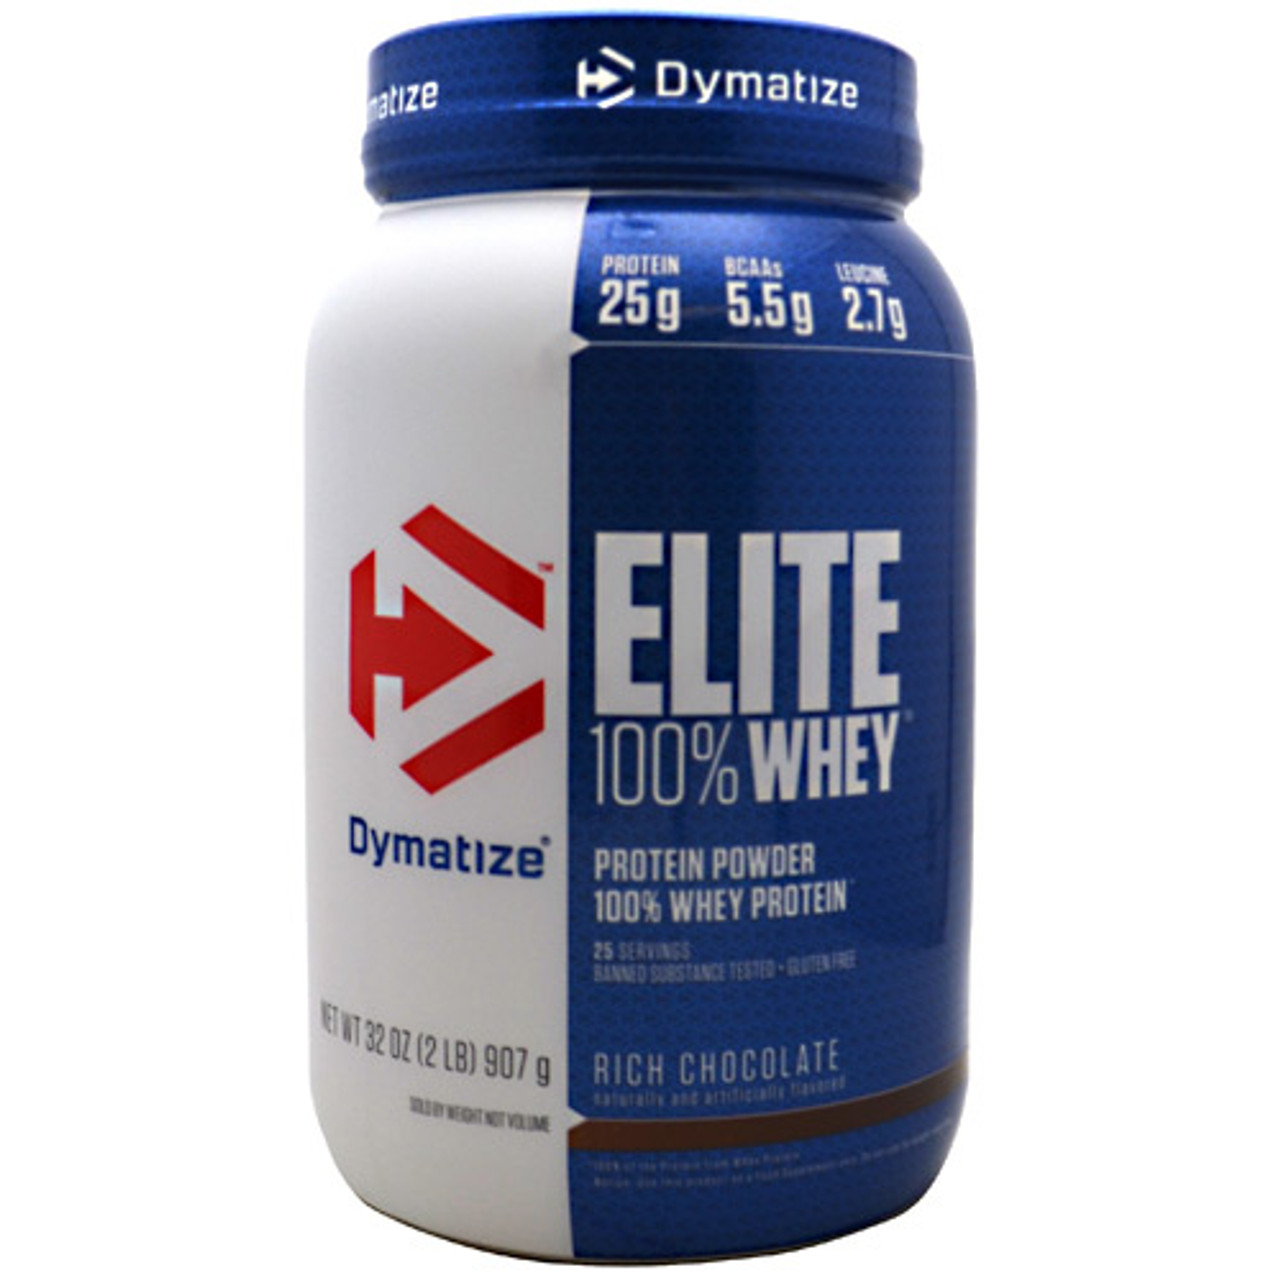 100% Whey Protein by Dymatize 2lb